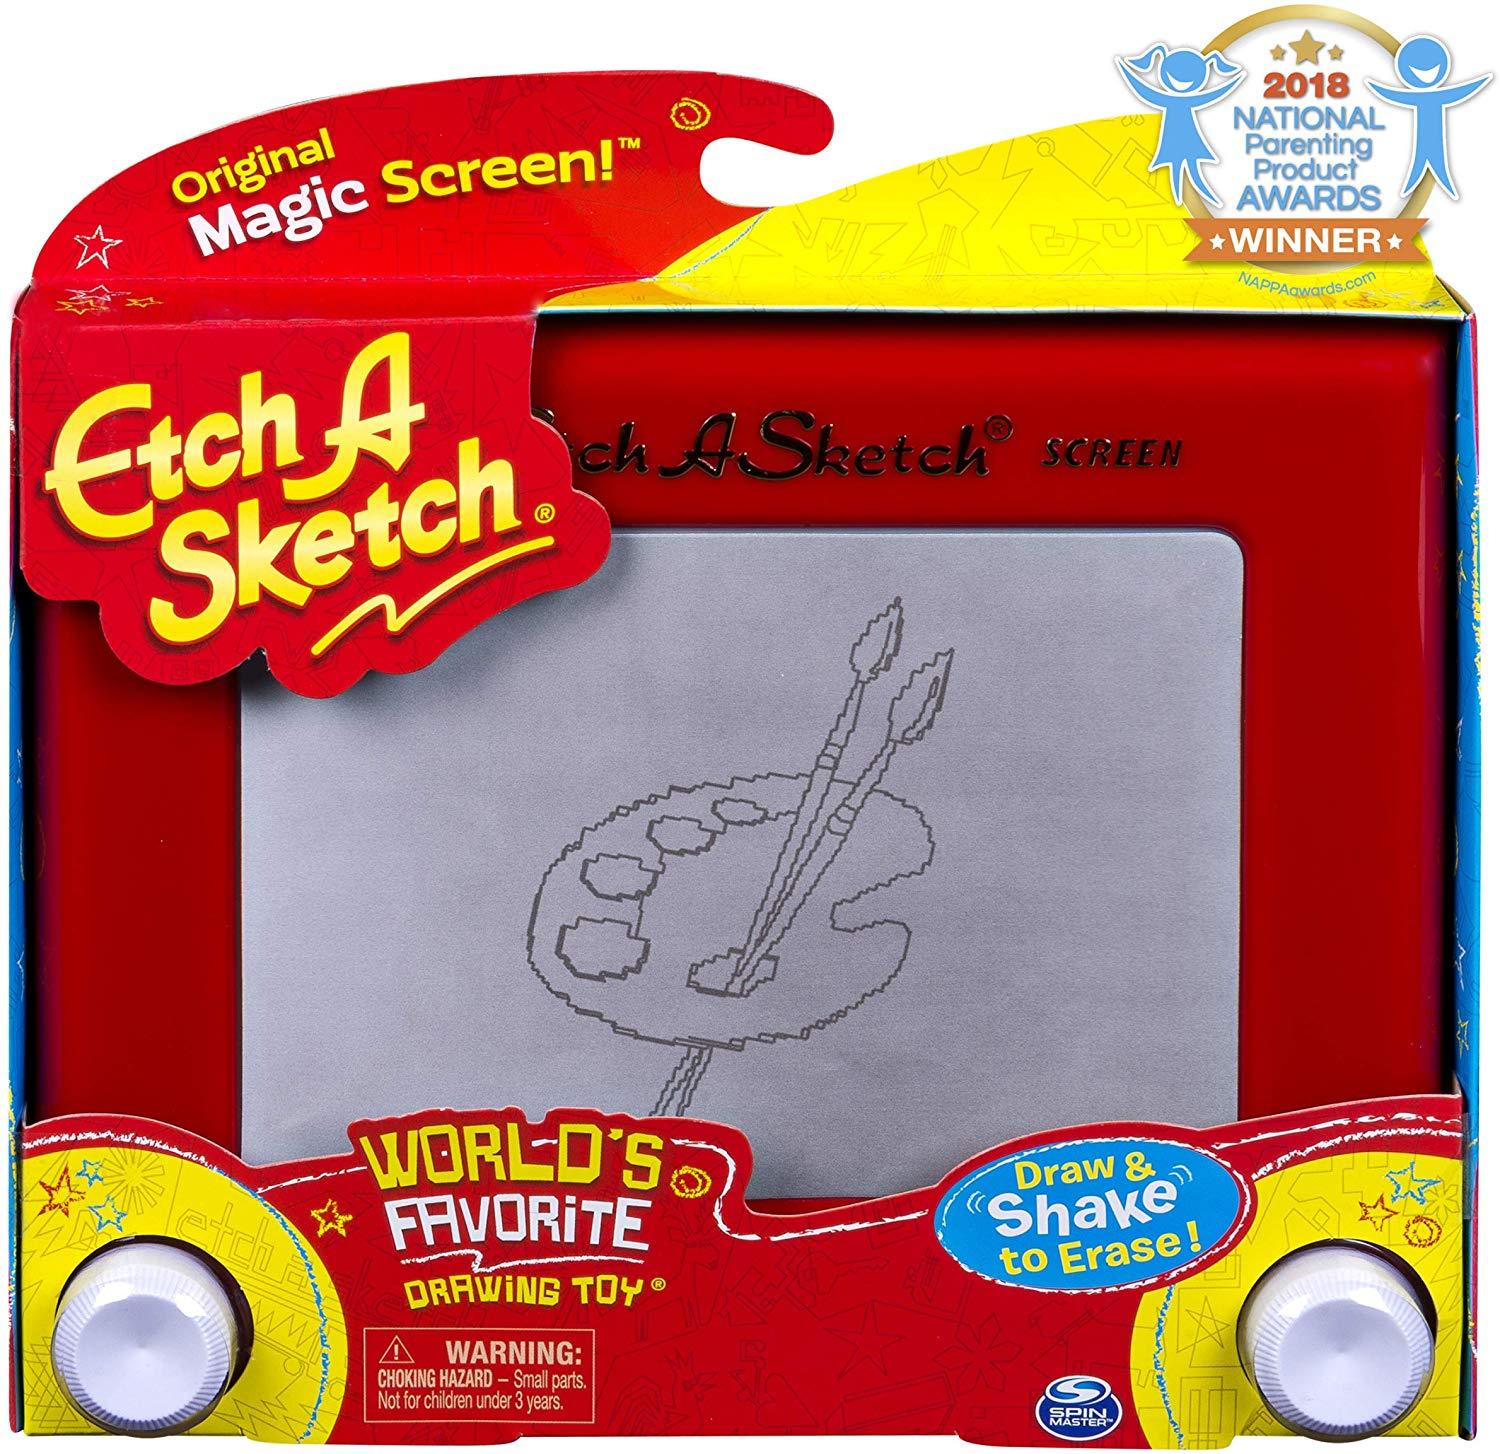 Etch A Sketch, Classic Red Drawing Toy with Magic Screen, for Ages 3 and Up.